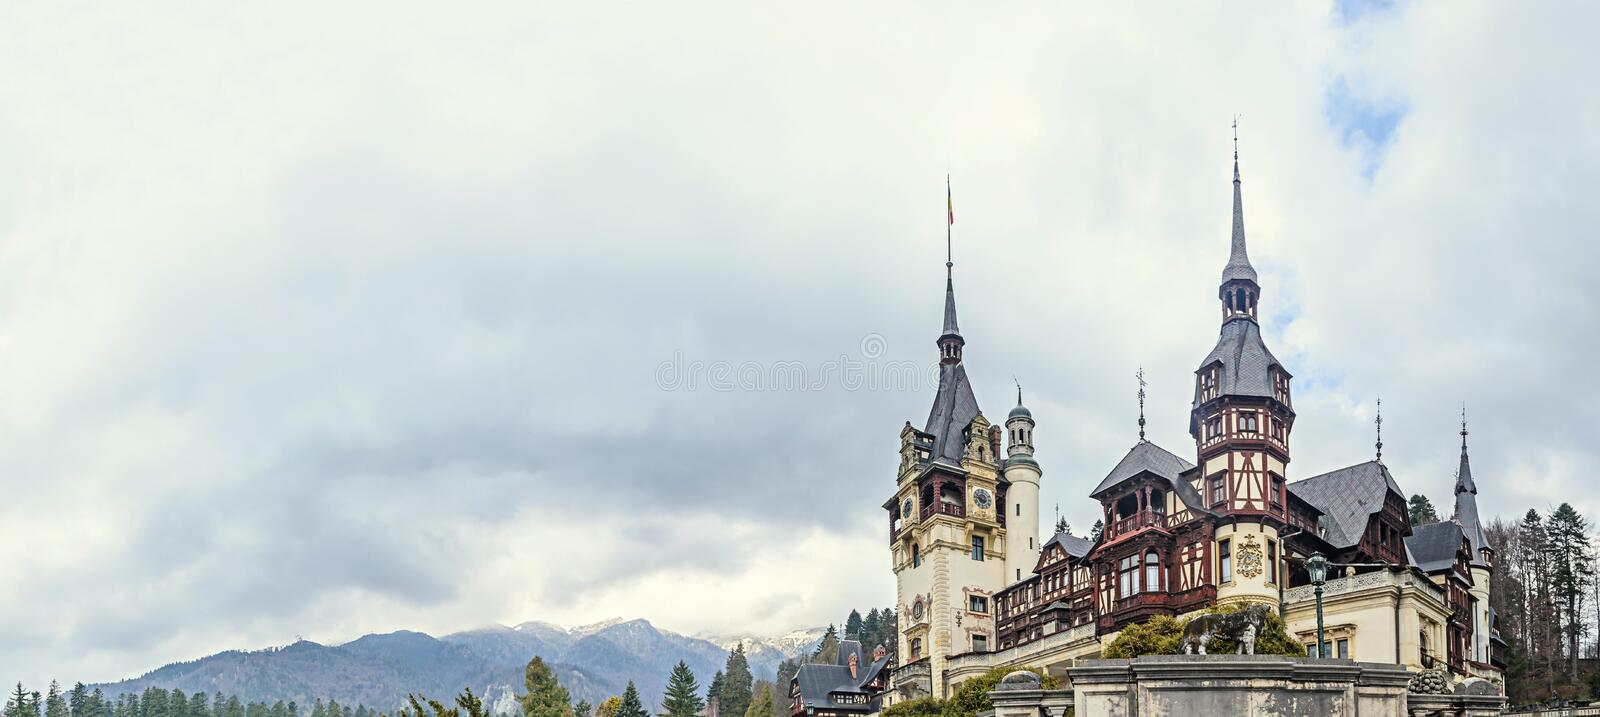 The Peles Castle from Sinaia Romania, Carpathian Mountains royalty free stock photos